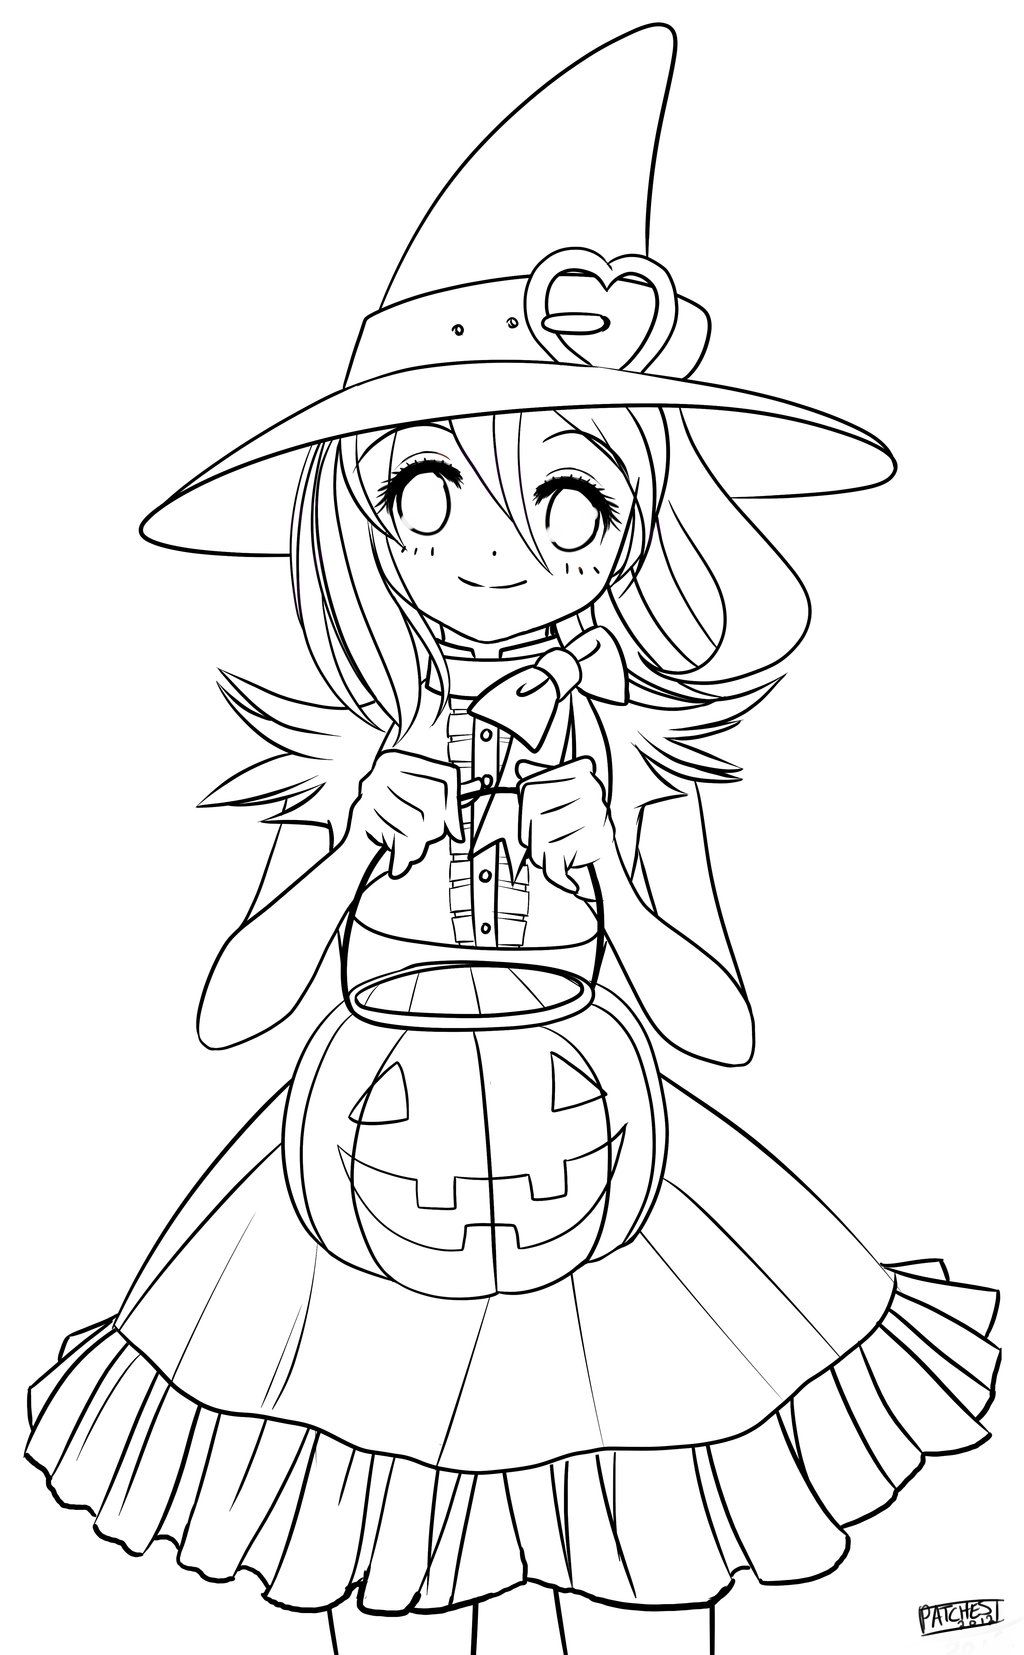 color me halloween chan by dapatches on deviantart lineart